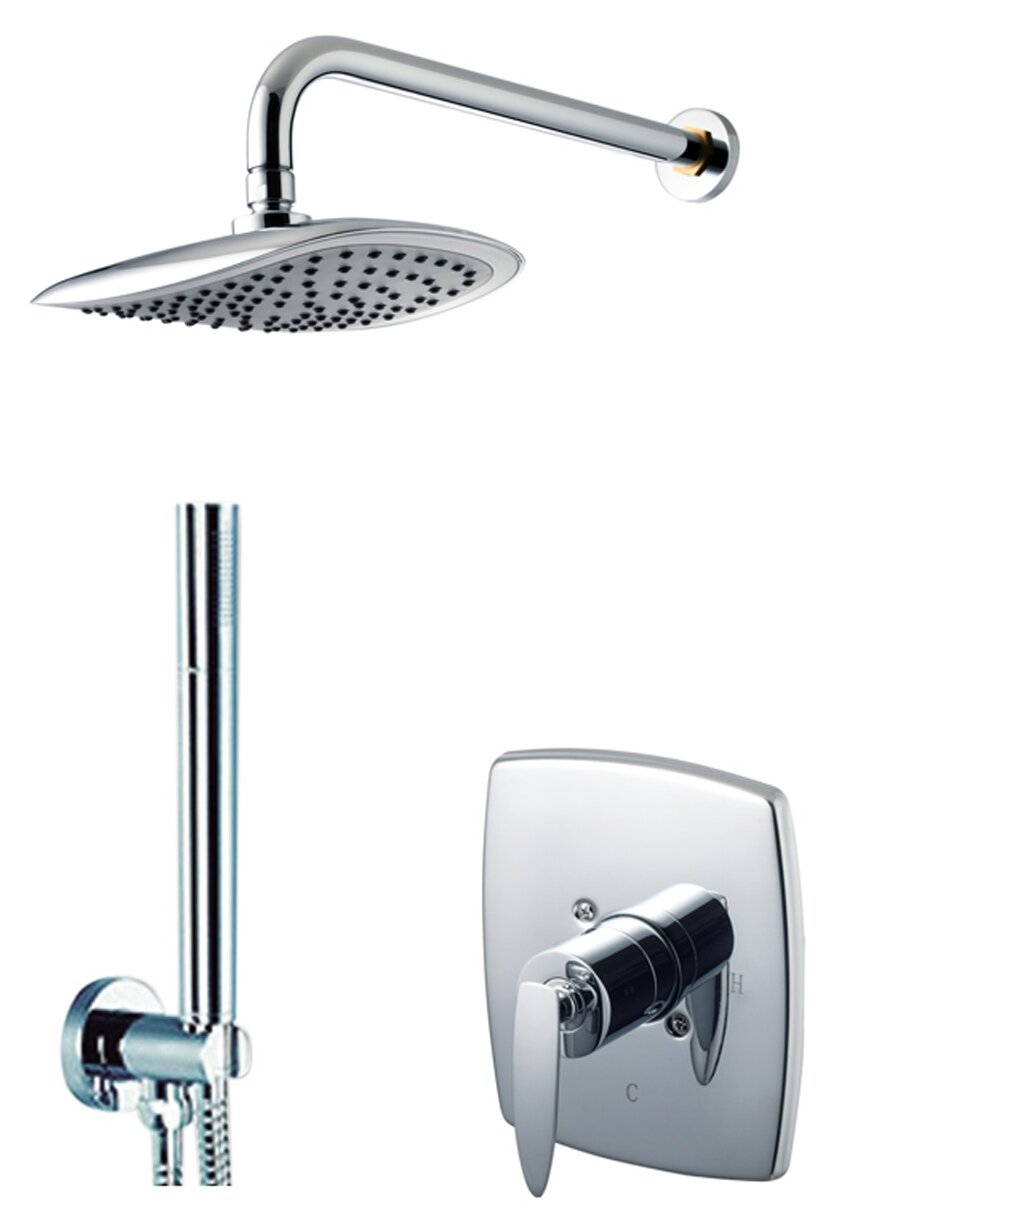 Eden Diverter Dual Function Volume Control Shower Faucet With Valve And Trim